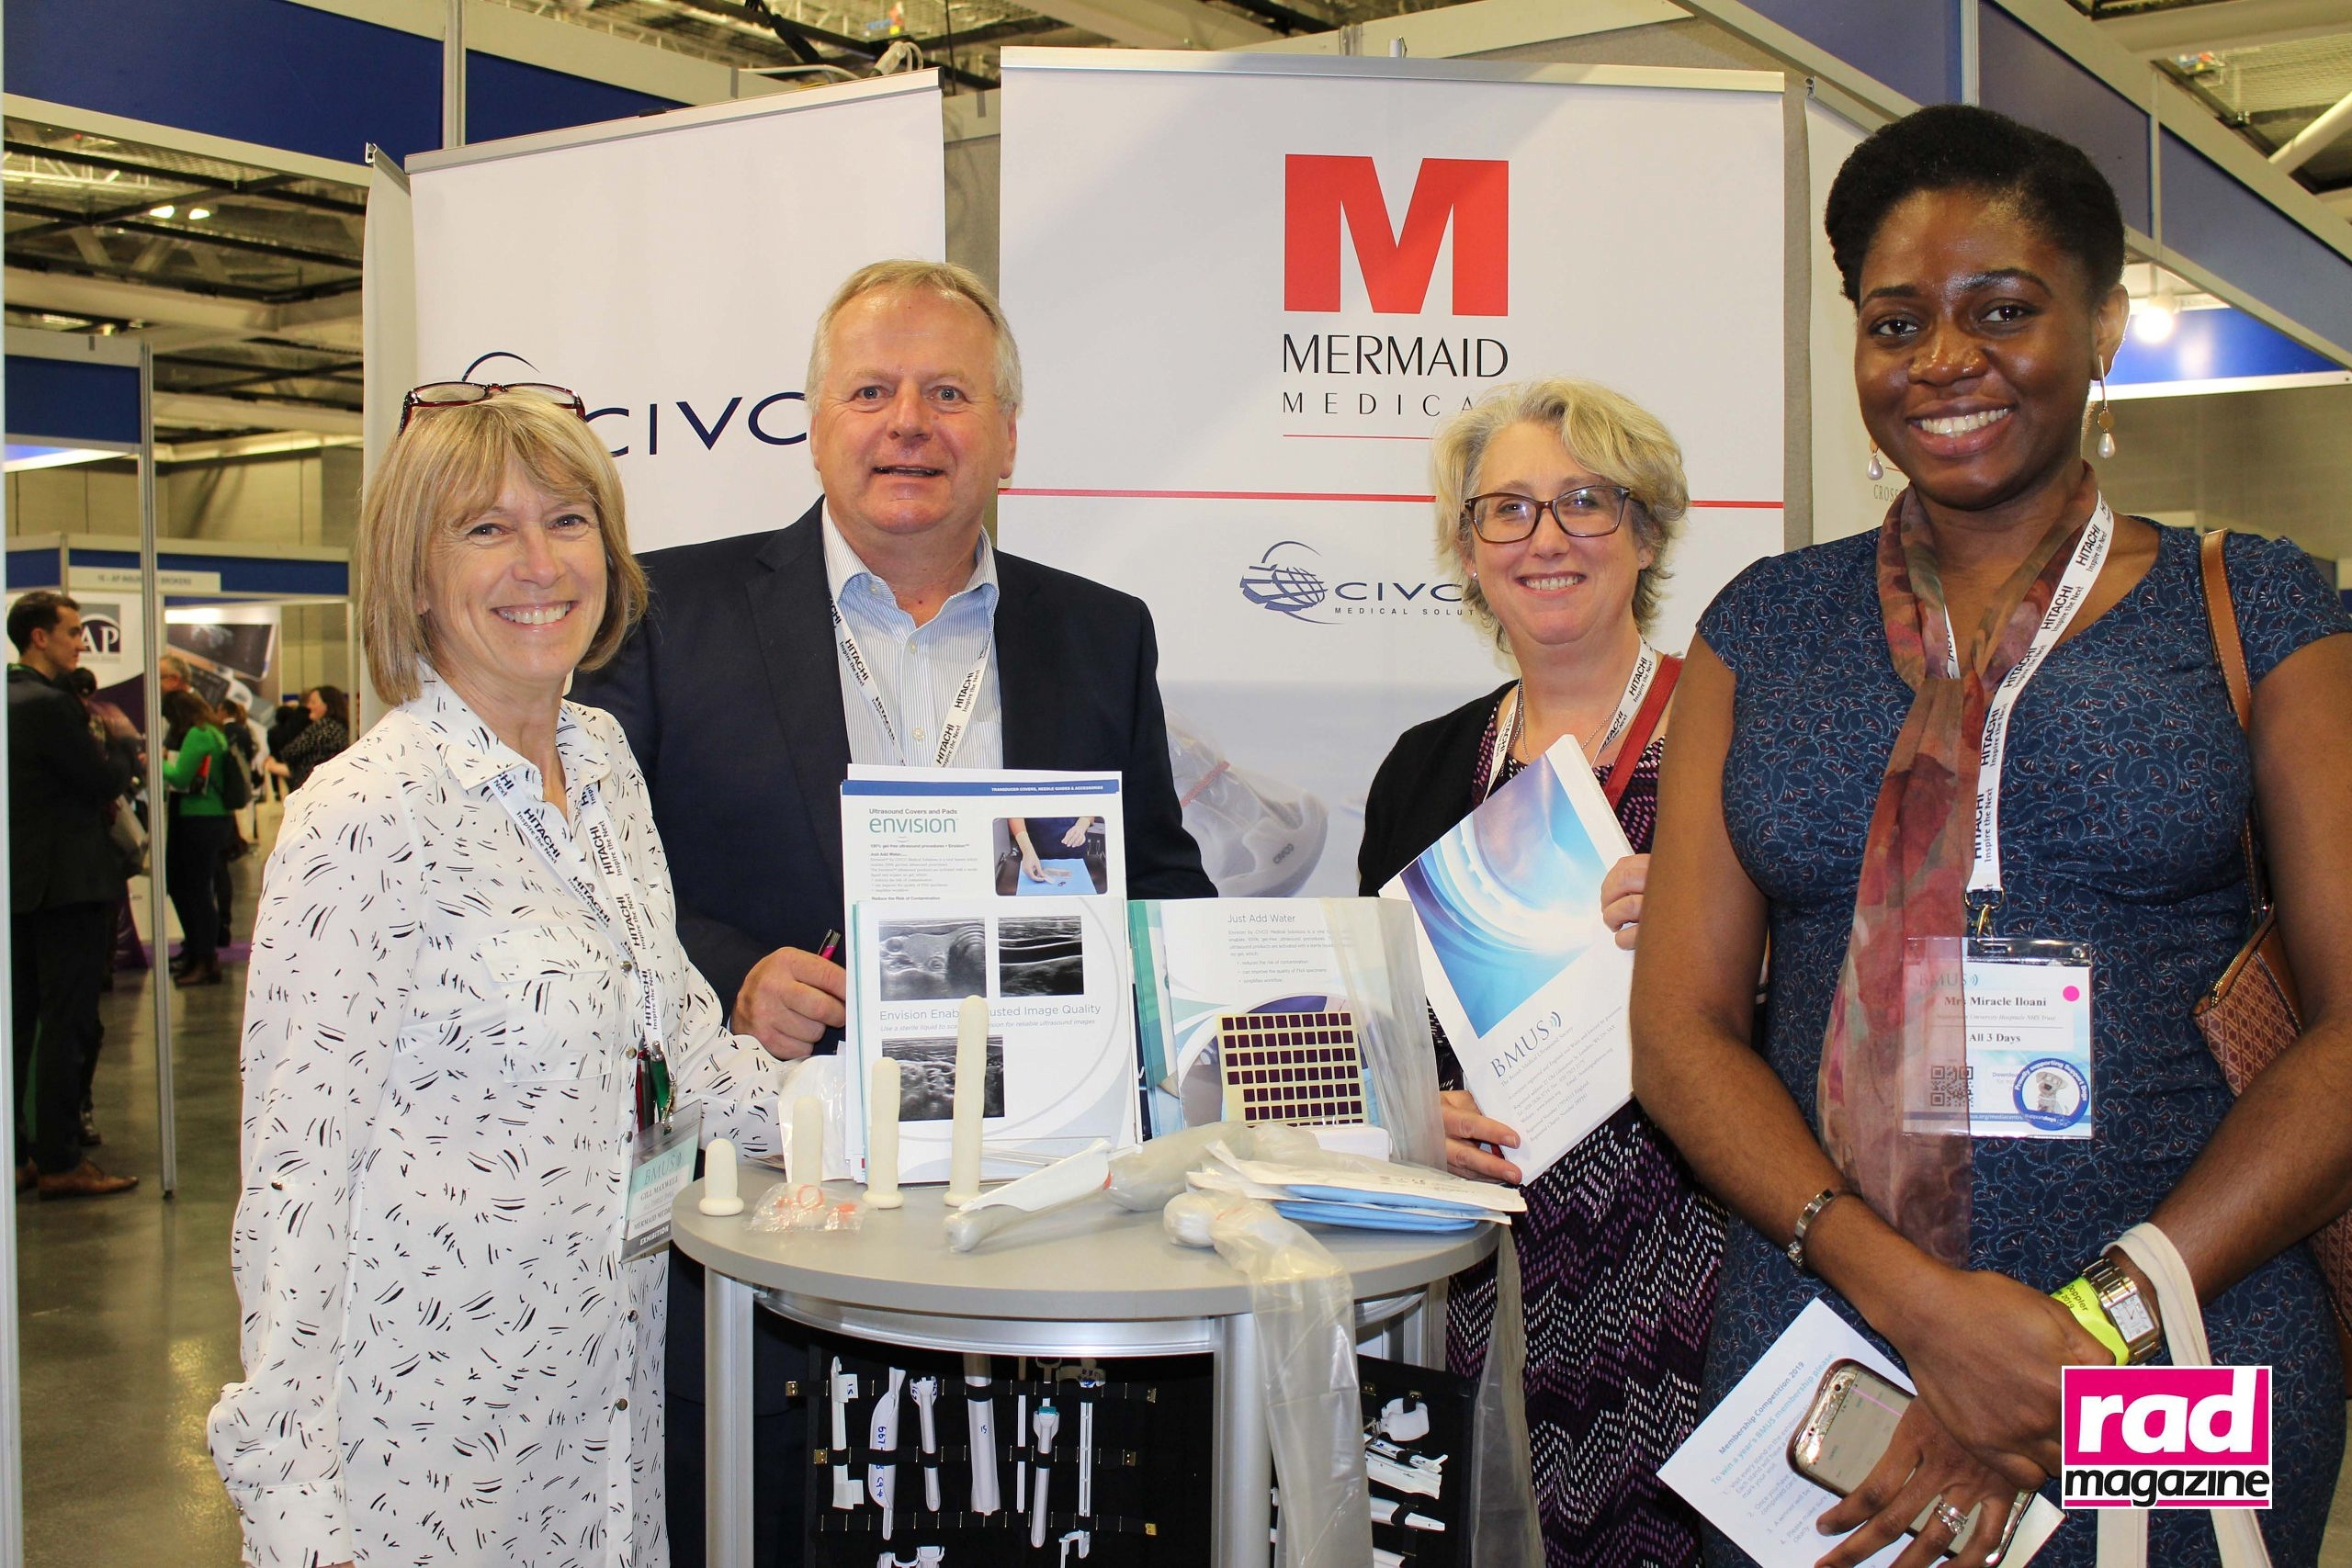 Mermaid Medical at BMUS 2019